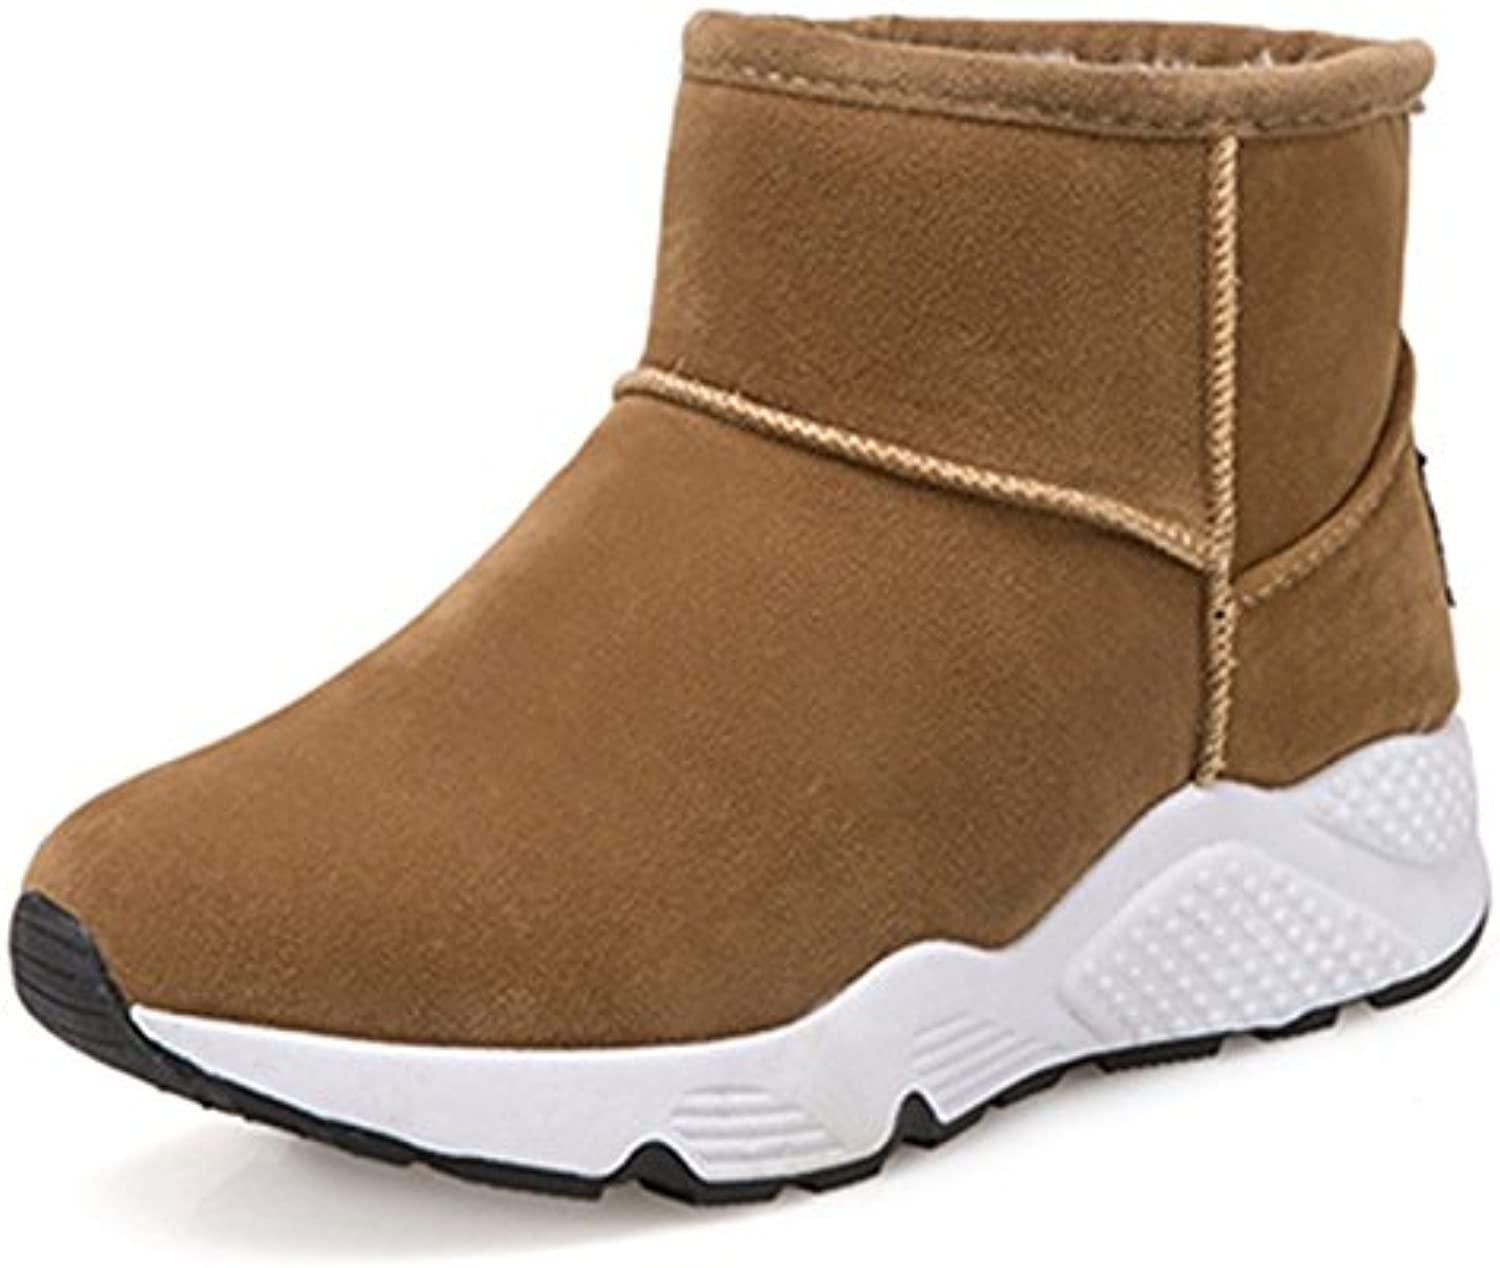 WYMBS Women's shoes Thickening Keep Warm Snow Boots Movement Leisure Short Tube Cotton Boots,Brown,40